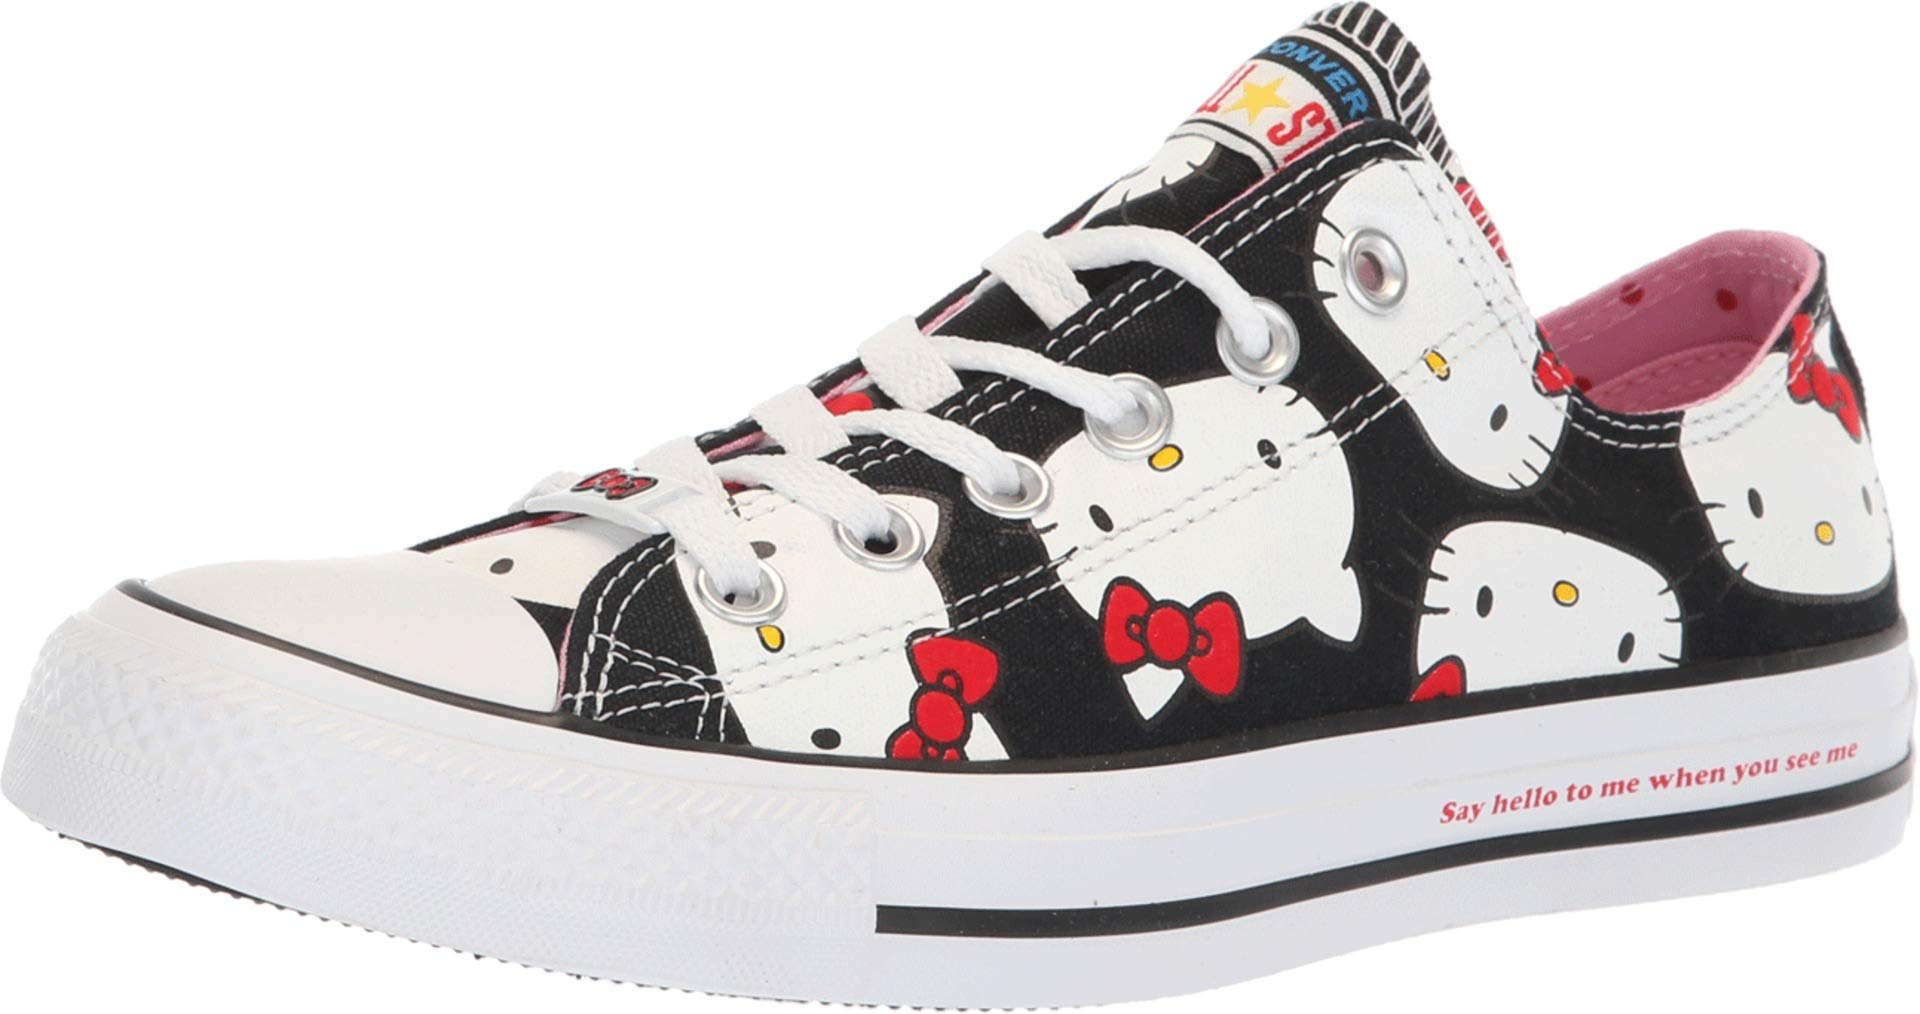 e3bac39b64dca Converse Chuck Taylor All Star Lo Hello Kitty Fashion Sneakers (Black 9617,  5 Women / 3 Men B US)